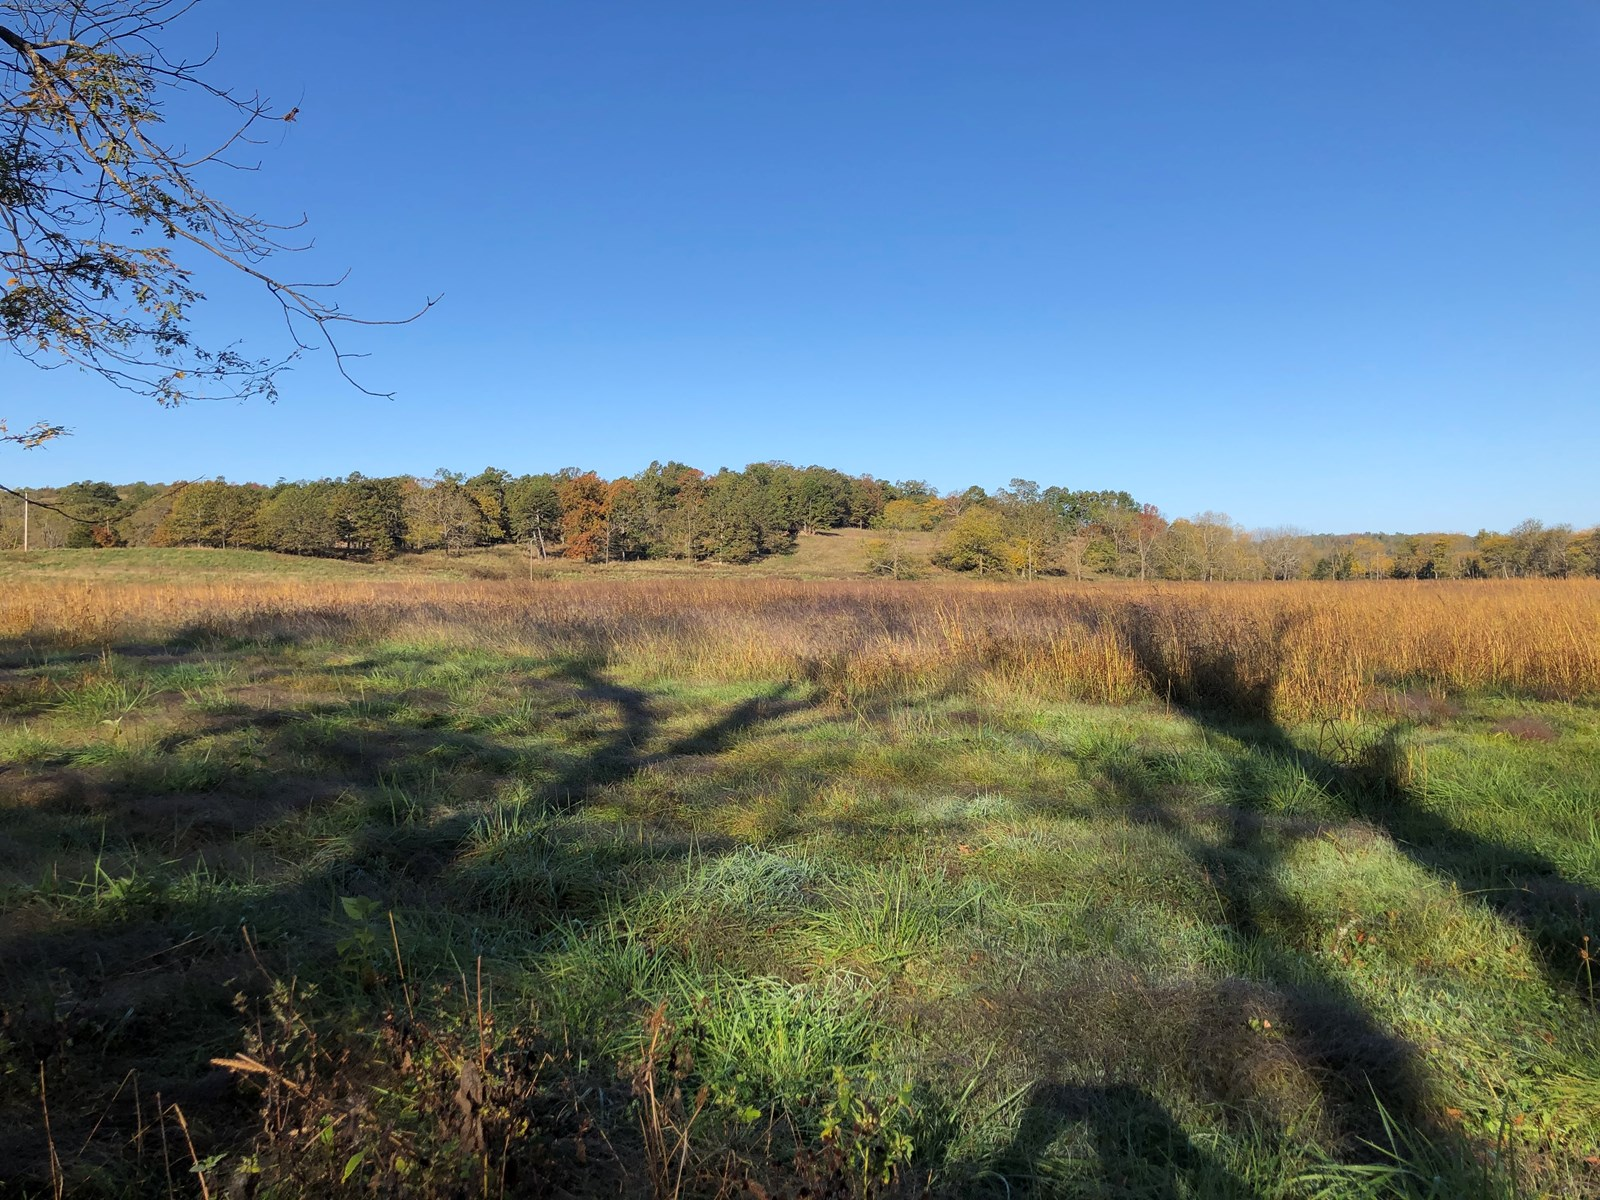 Southern Missouri Farm for Sale, Prime Hunting Land for Sale